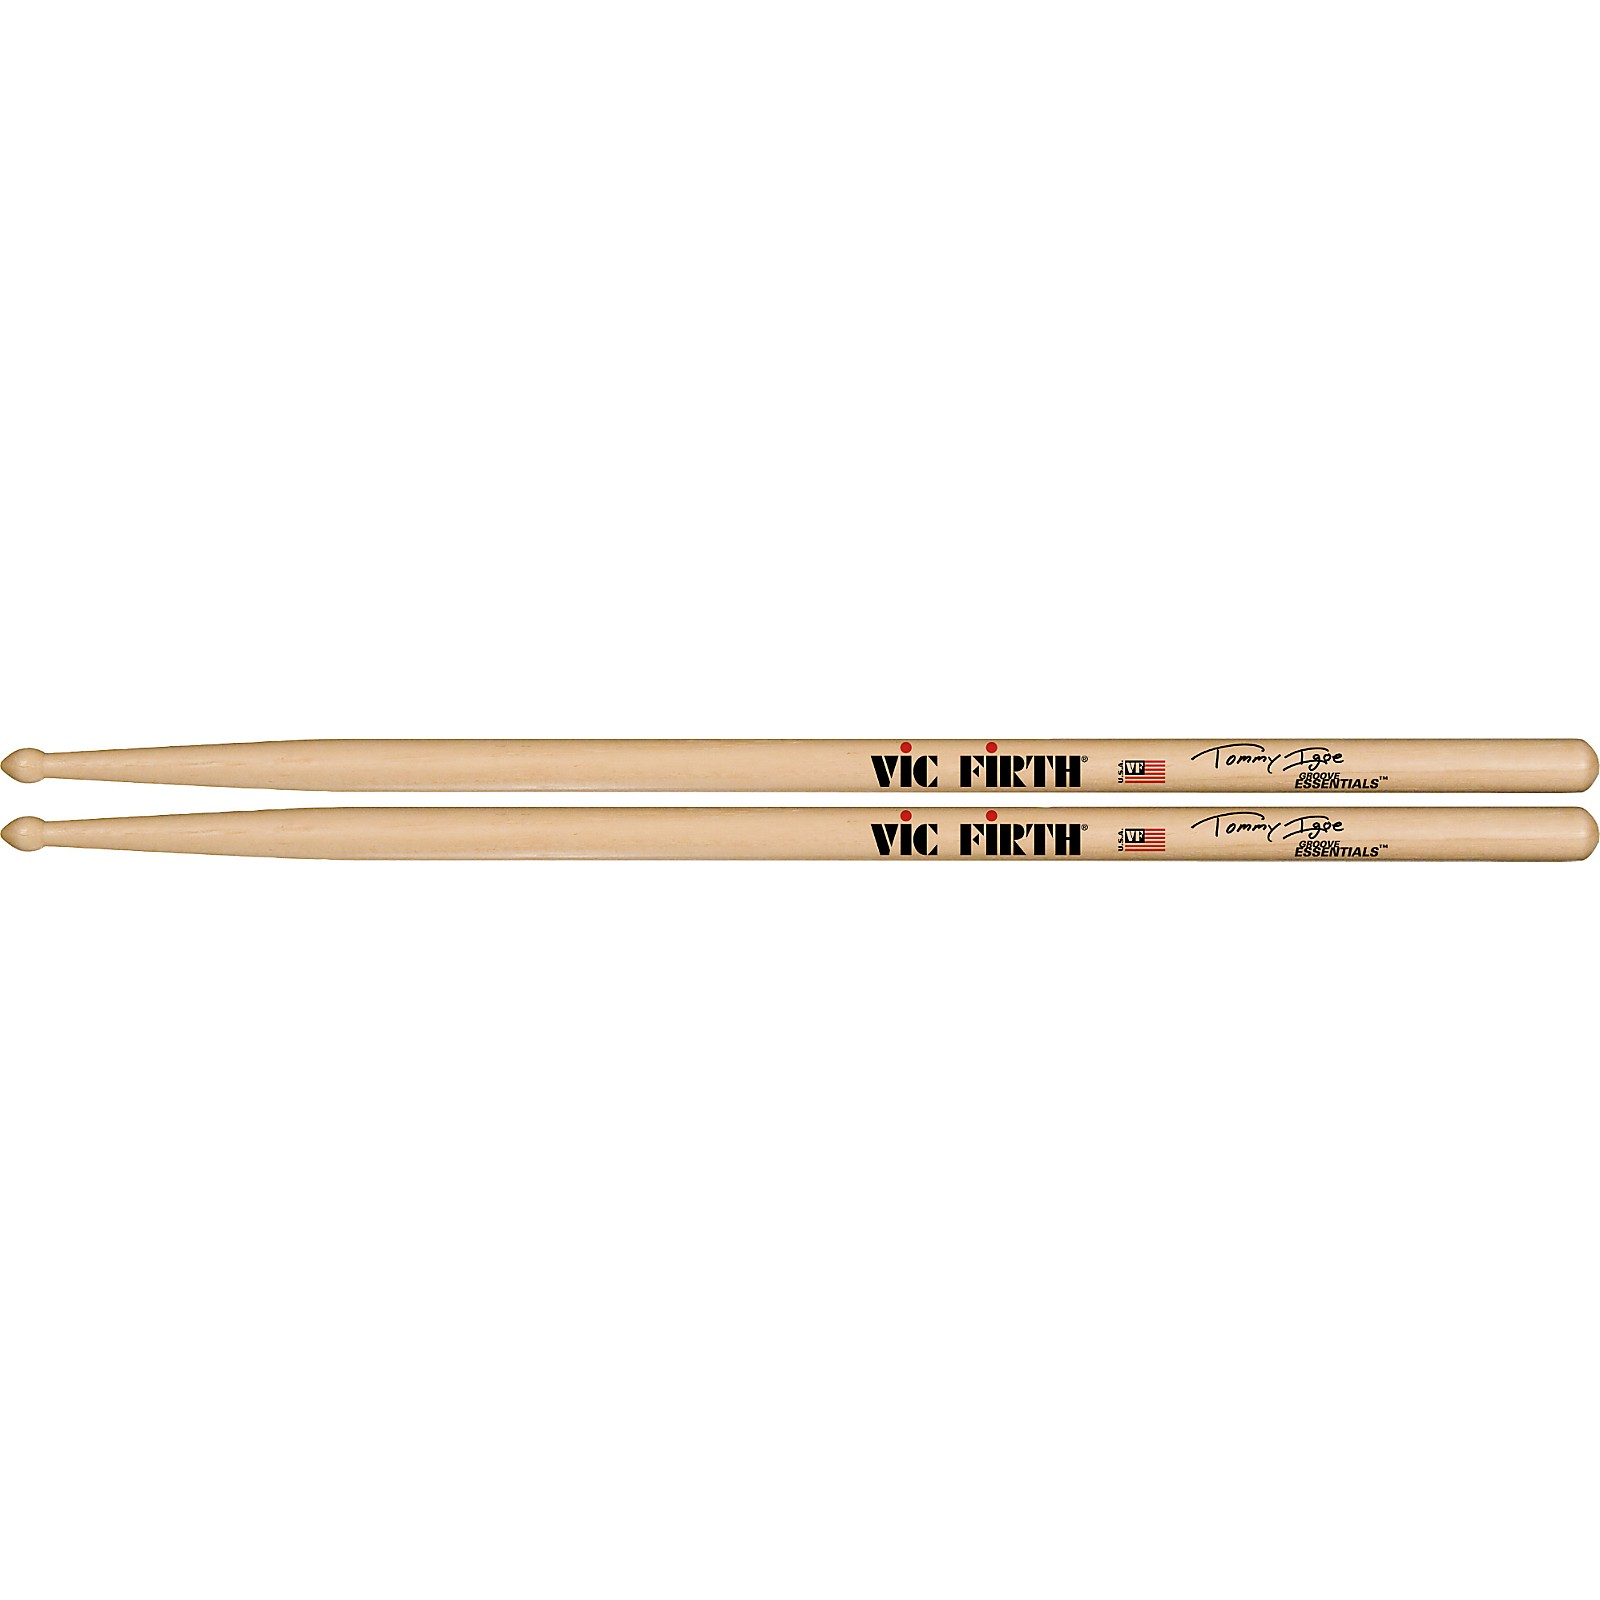 Vic Firth Tommy Igoe Signature Drumsticks